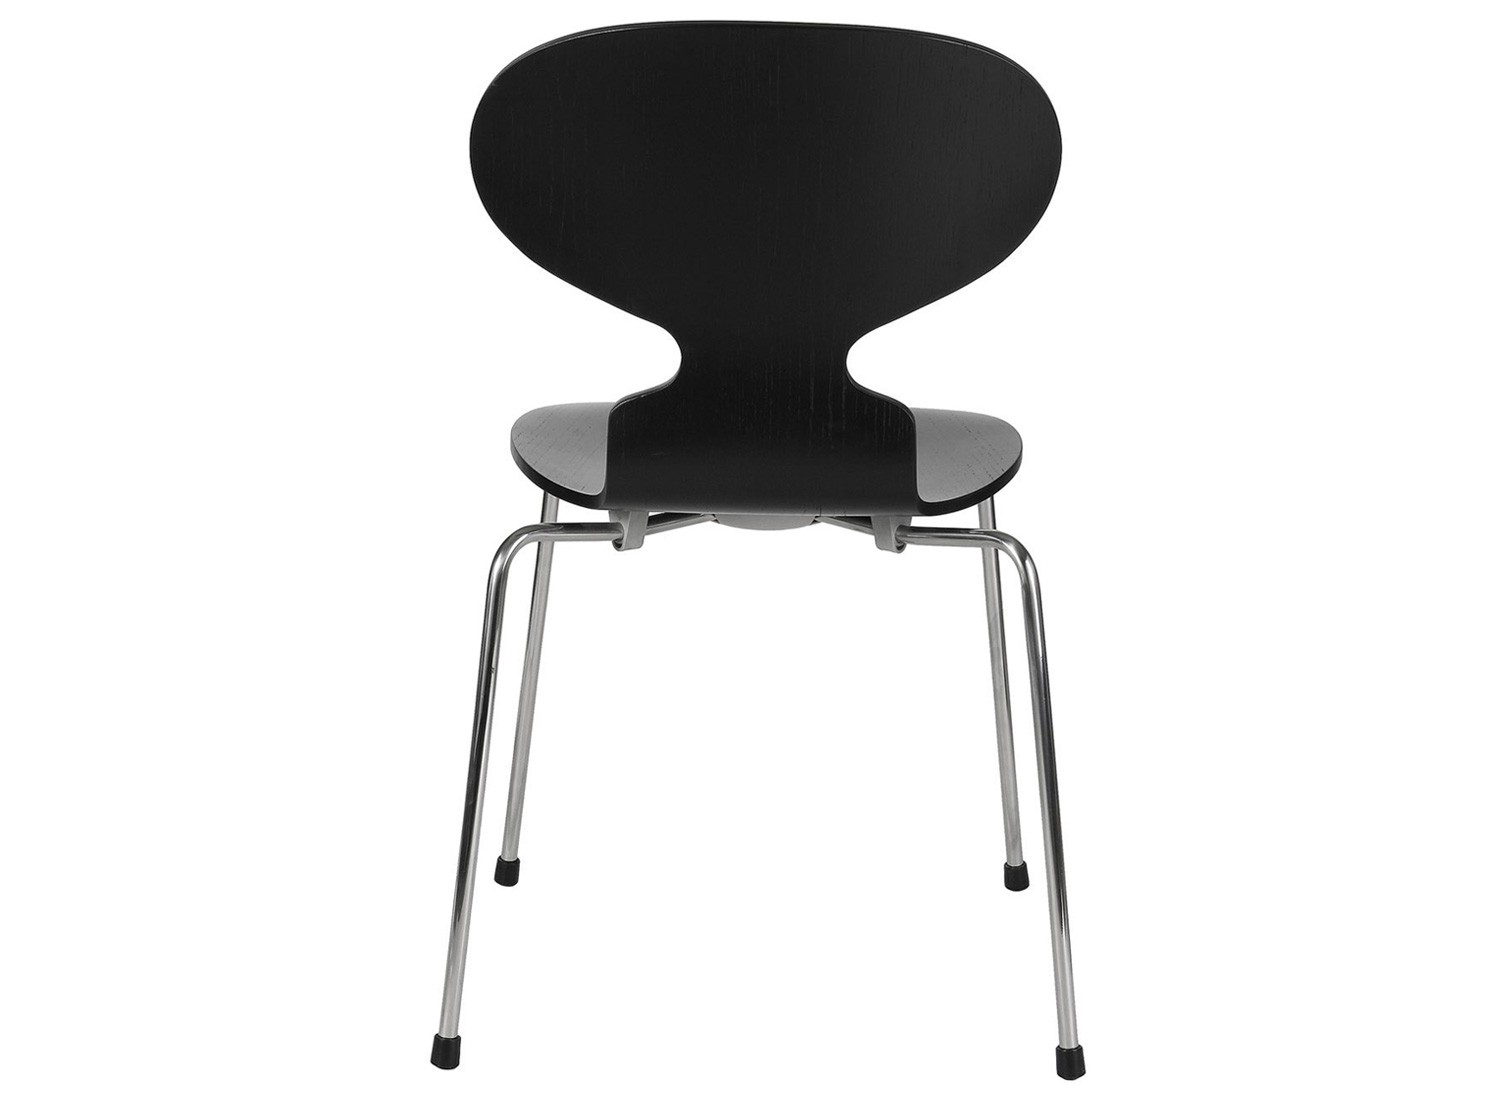 Ant chair 4 legs by arne jacobsen platinum replica for Arne jacobsen reproduktion